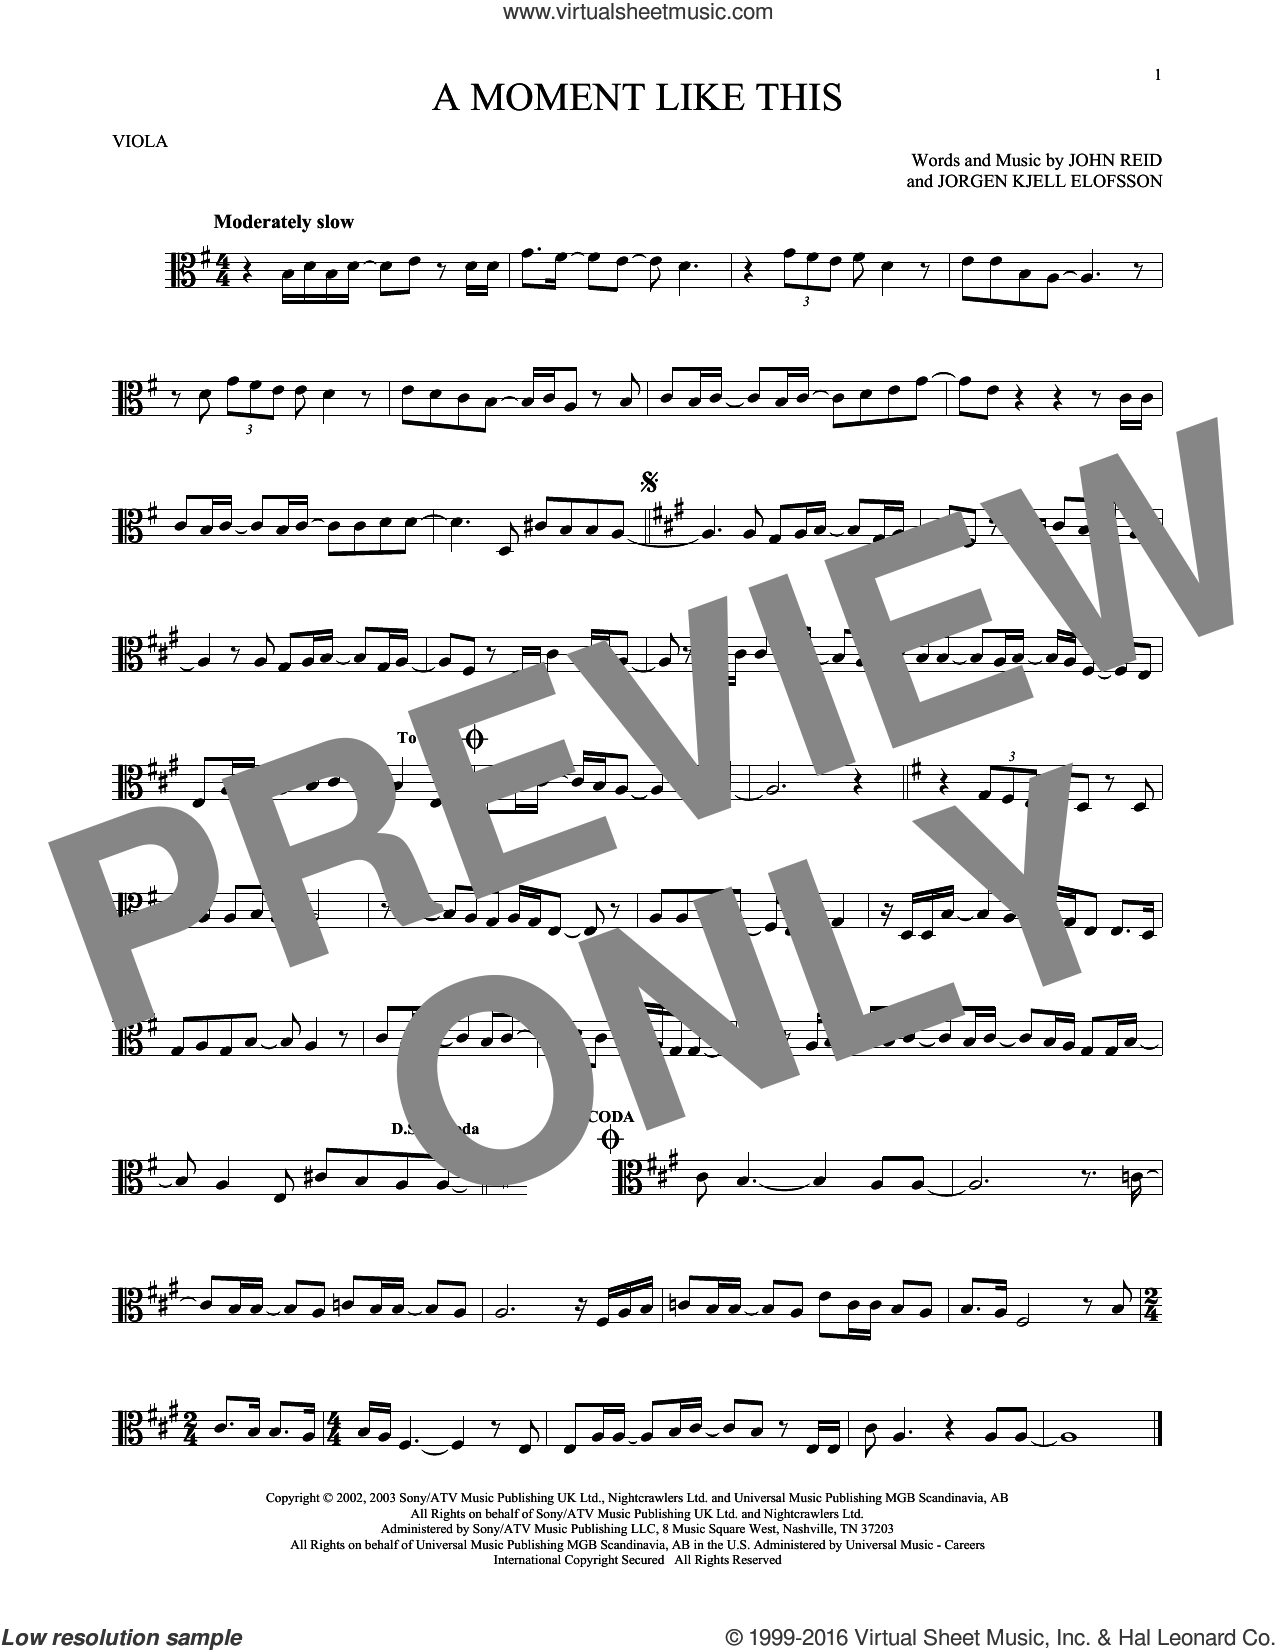 A Moment Like This sheet music for viola solo by Kelly Clarkson, John Reid and Jorgen Elofsson, intermediate skill level